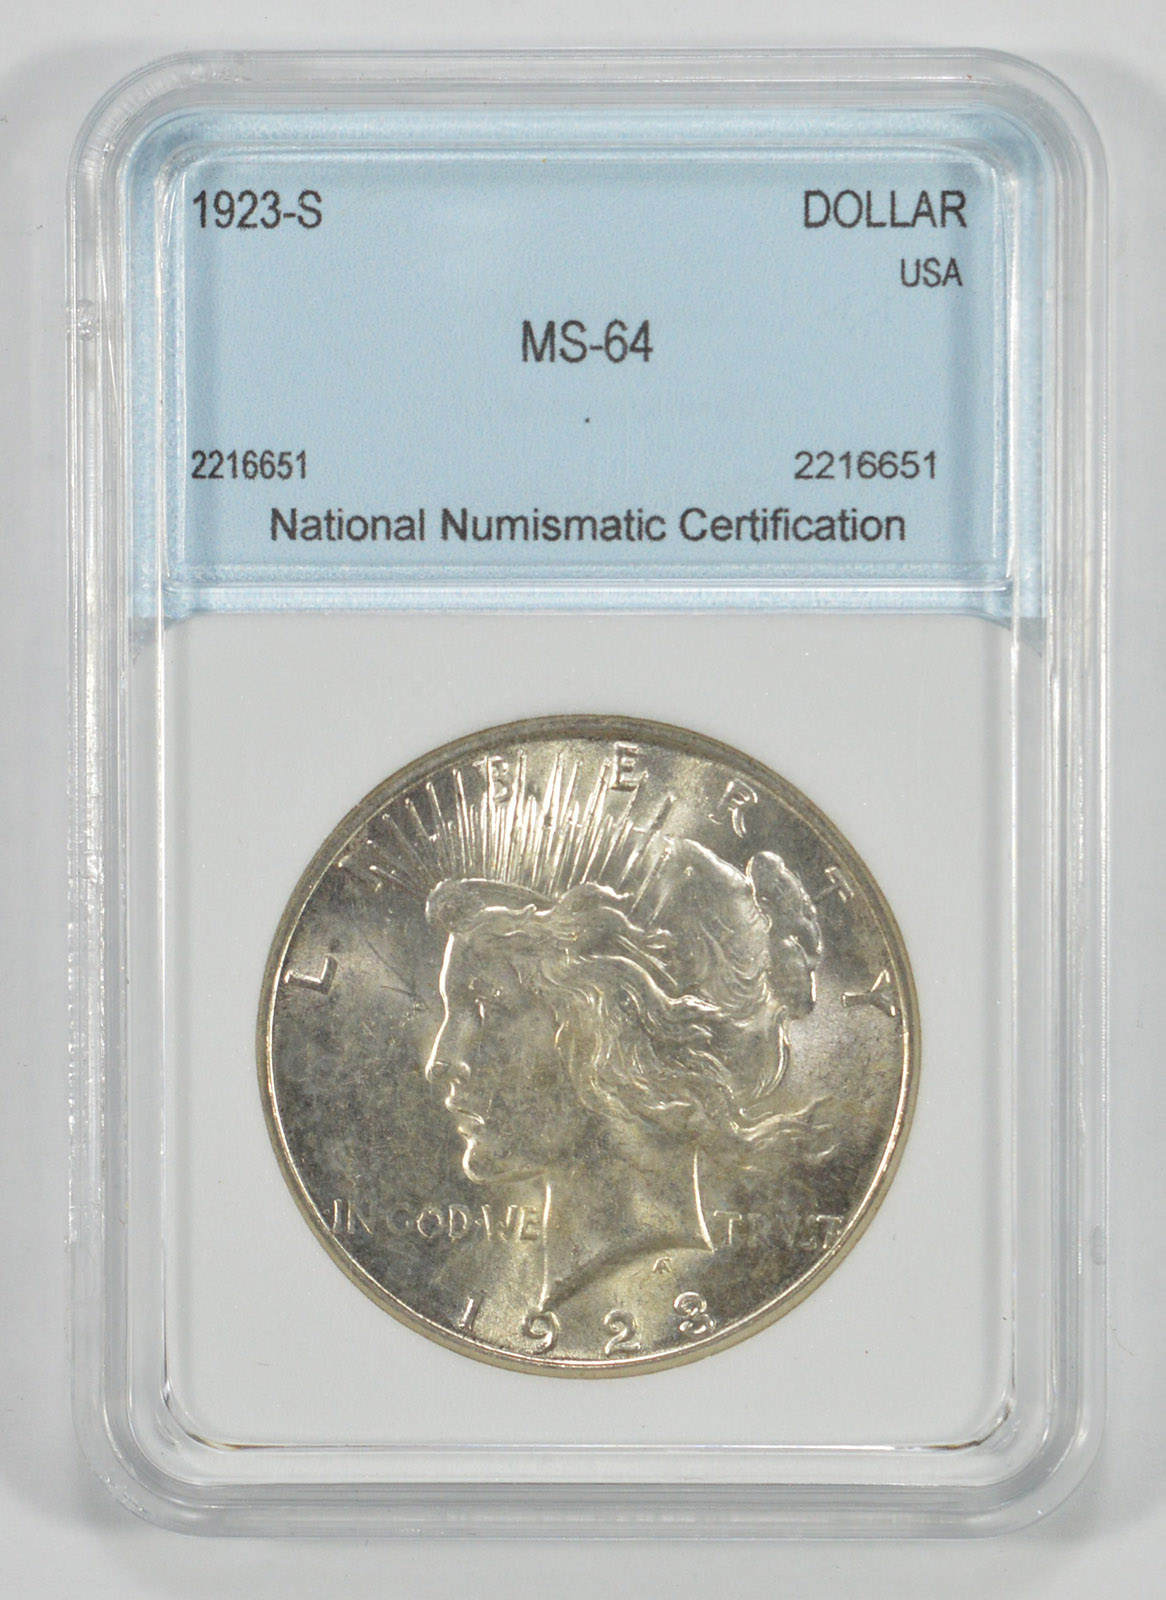 Ms64 1923 S Peace Silver Dollar Graded By Nnc Property Room